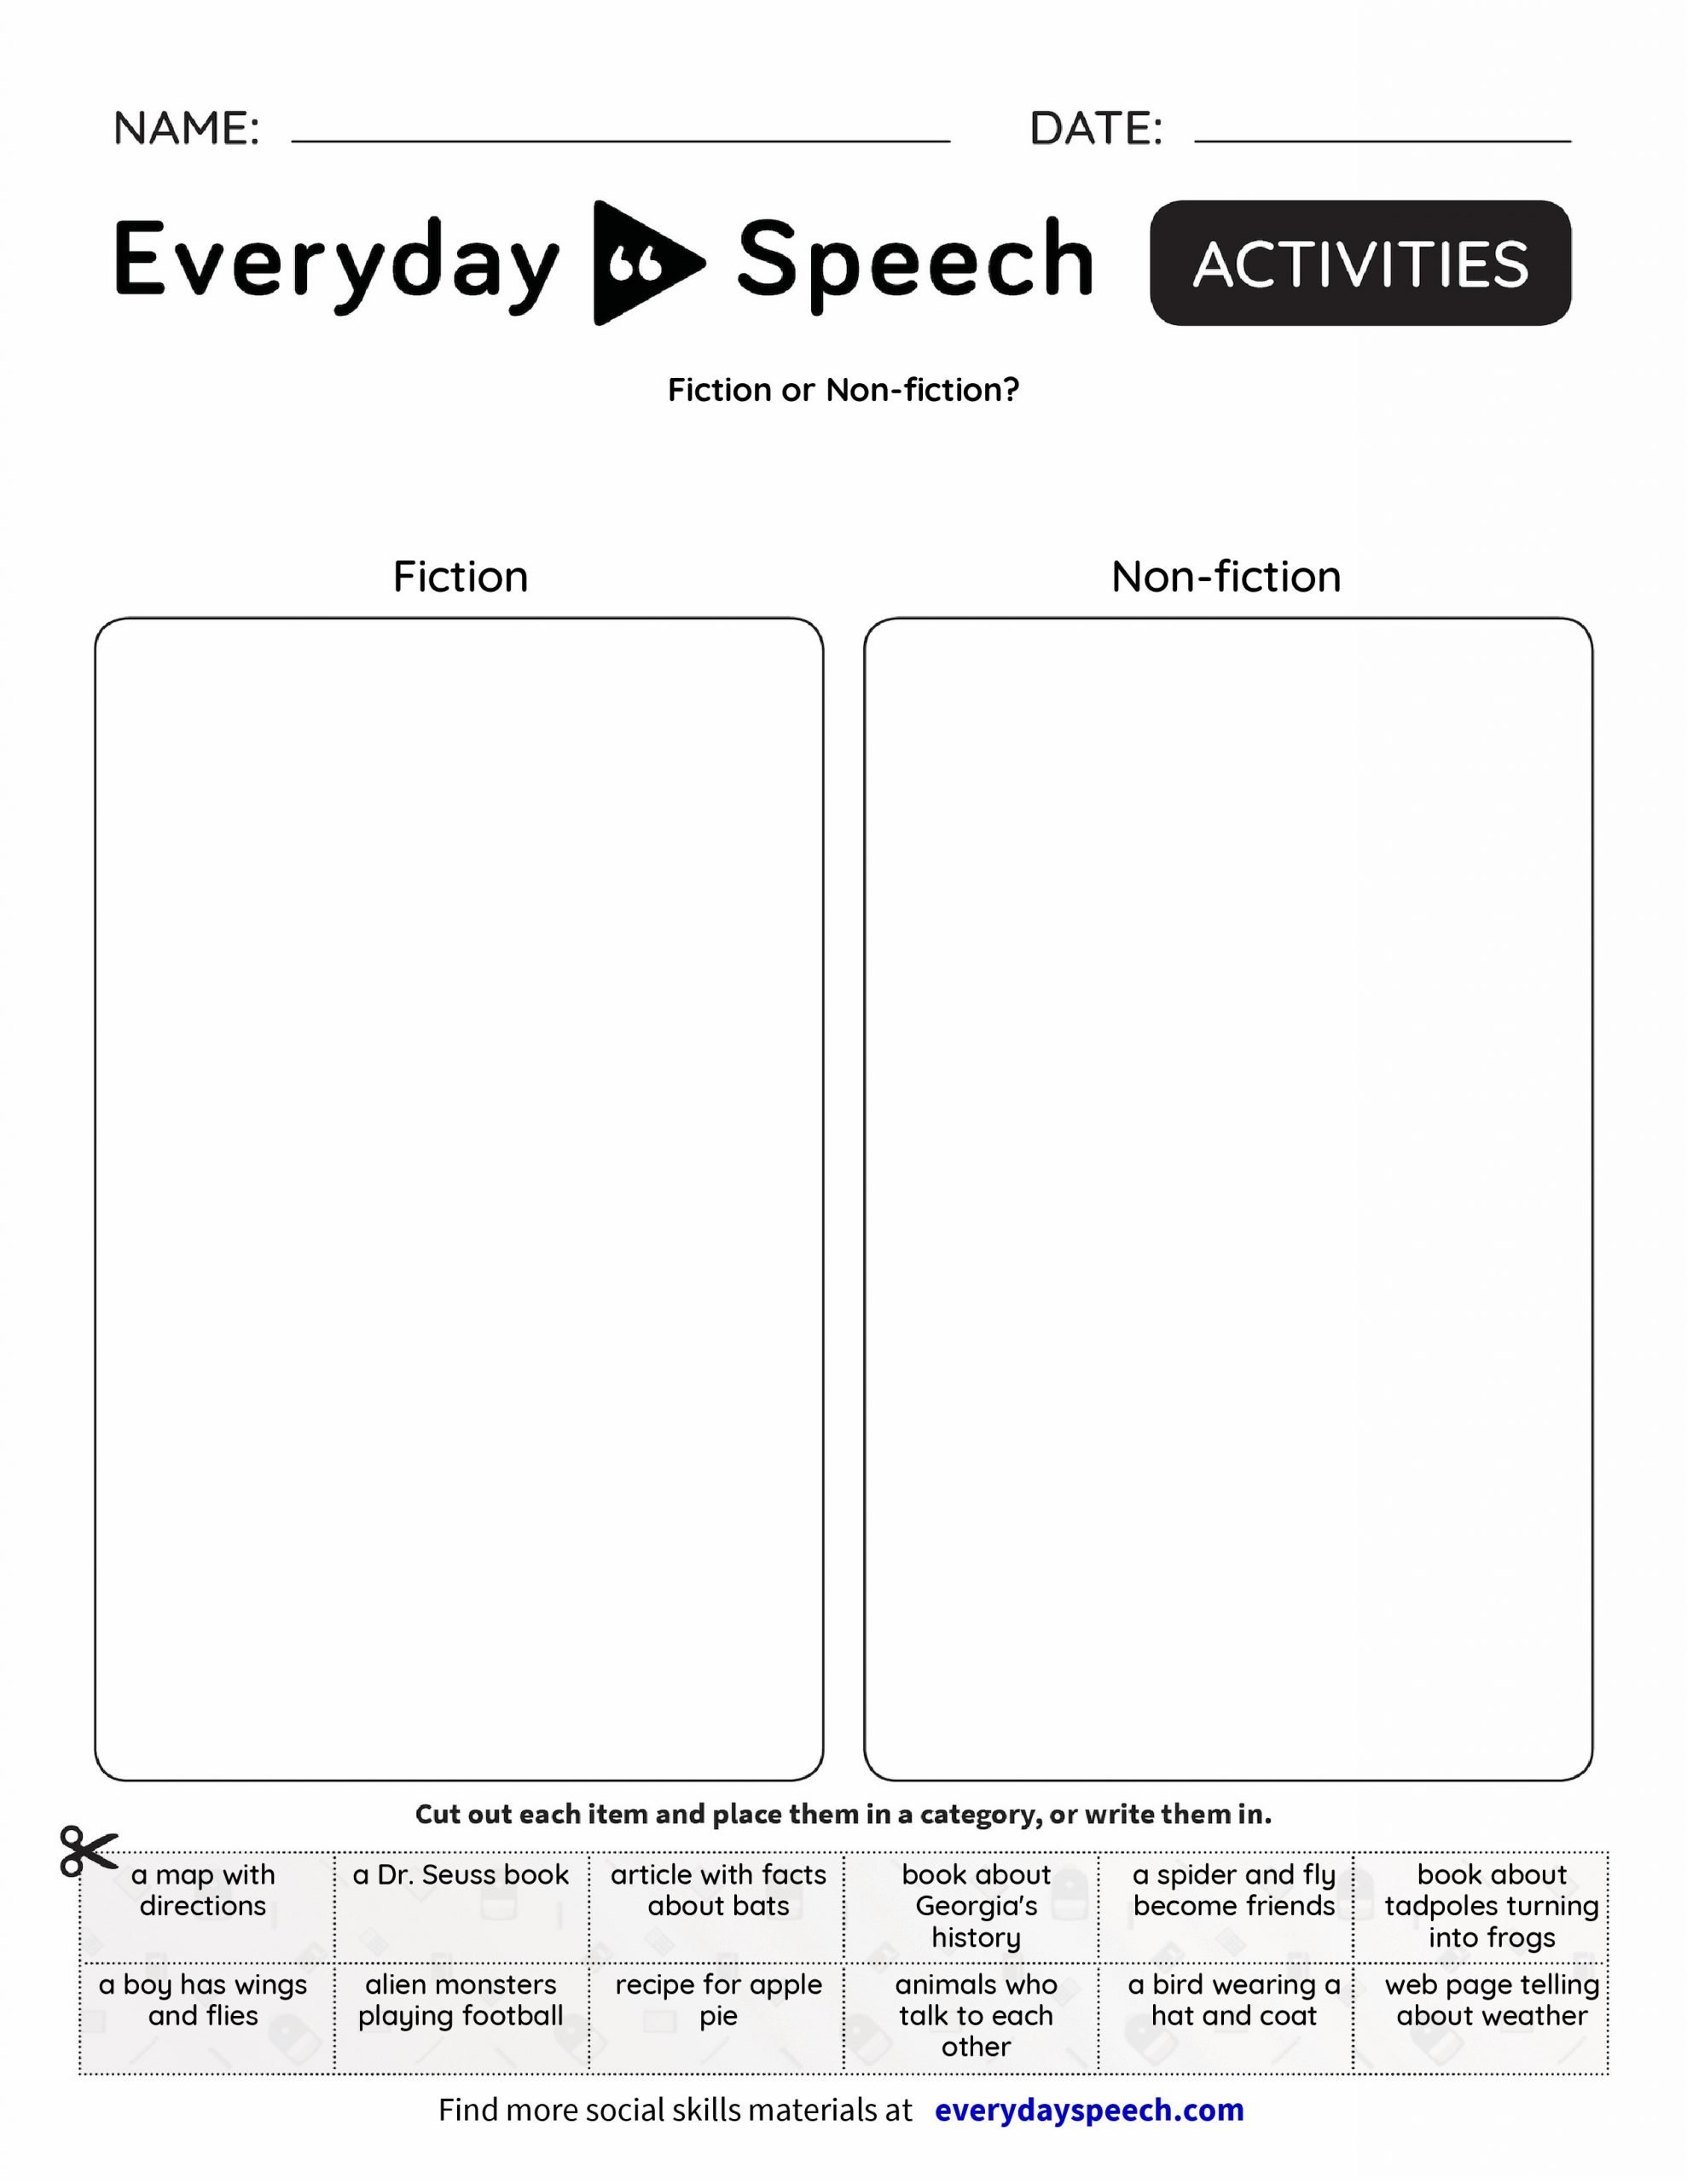 fiction or non fiction everyday speech everyday speech